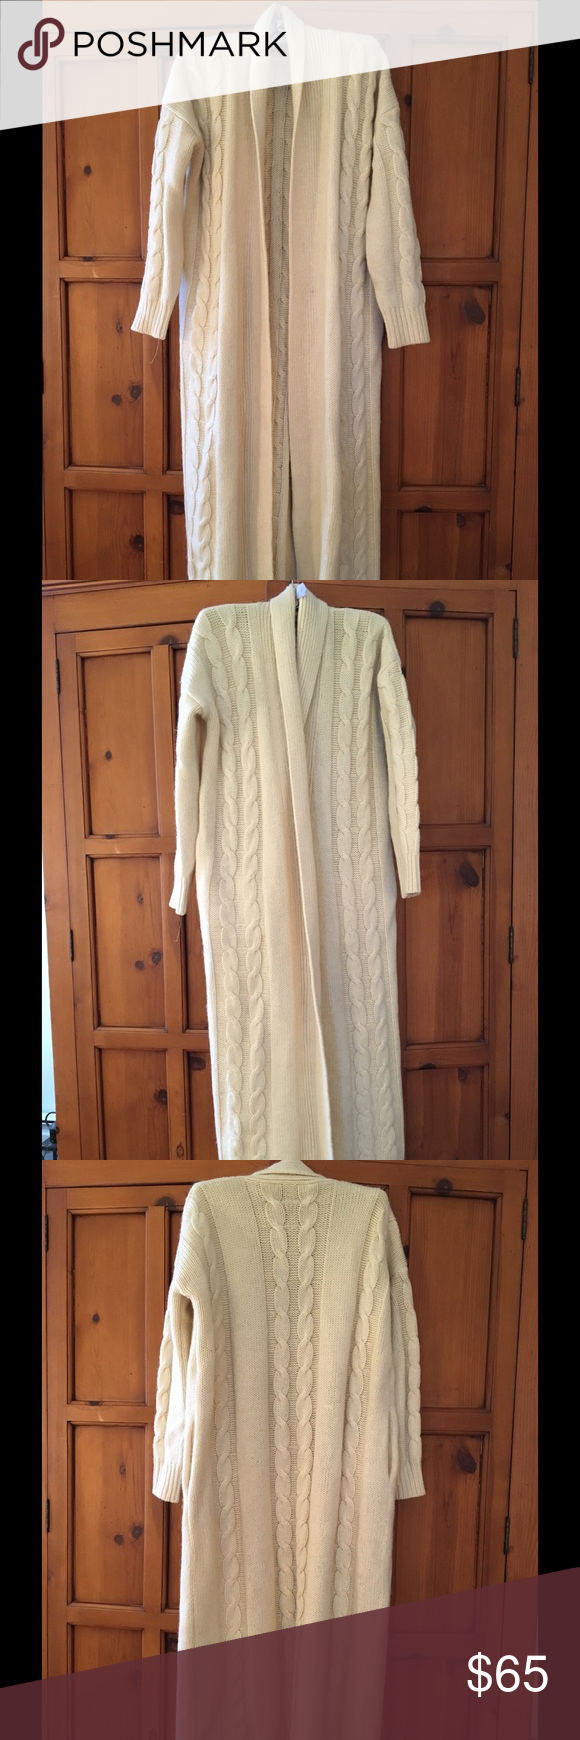 RARE I.B. DIFFUSION cream maxi wool cardigan coat | Ski shop, Wool ...